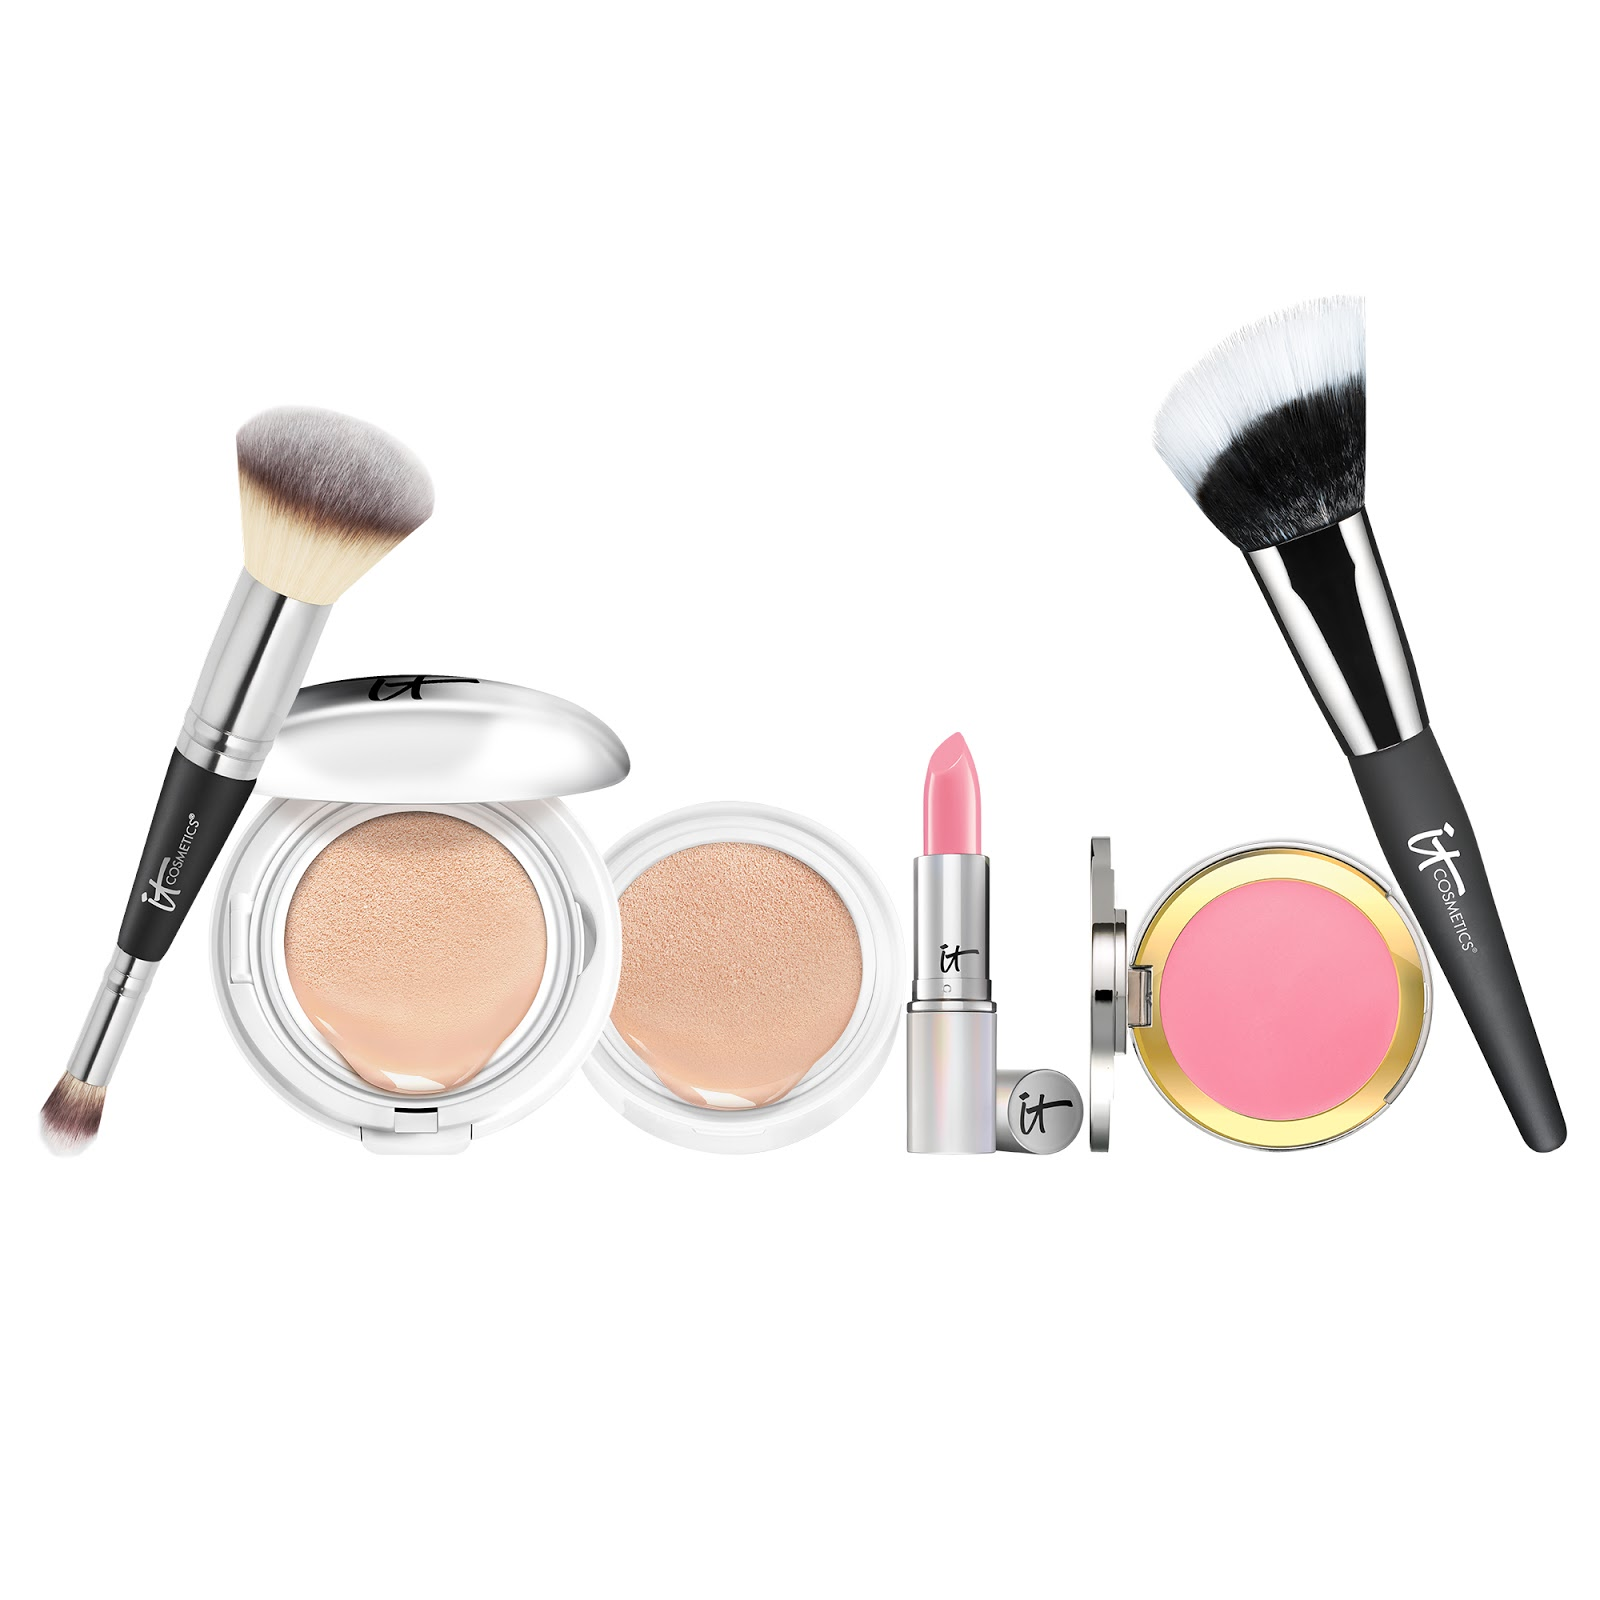 IT Cosmetics January TSV on QVC! - A Beauty Influencer''s View: The